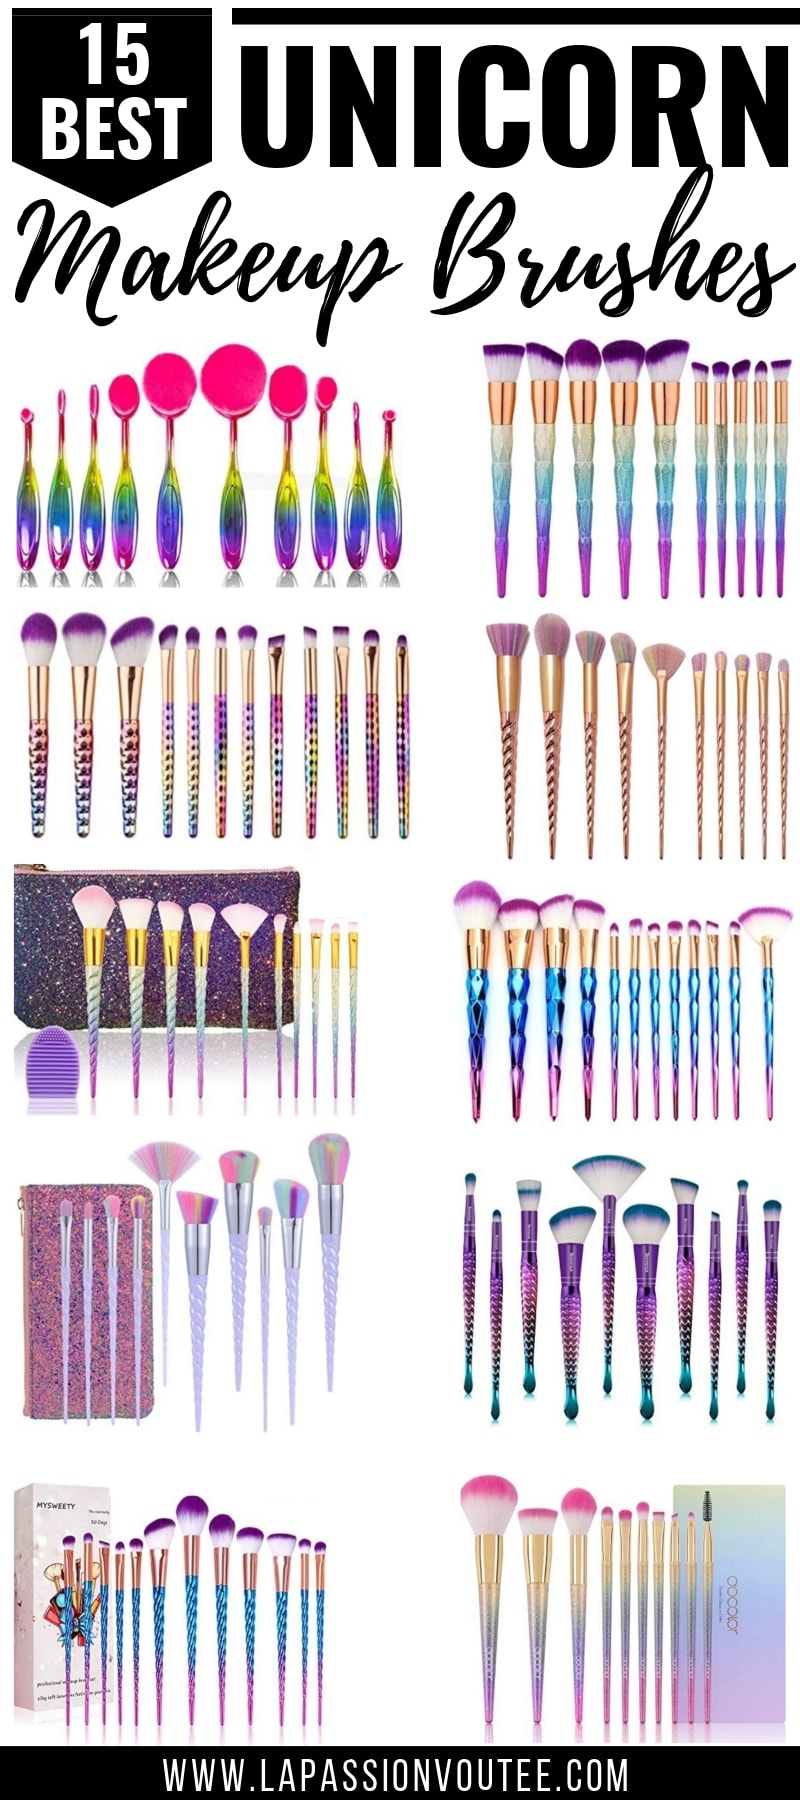 OMG, these are the absolute BEST unicorn makeup brushes on Amazon! Don't